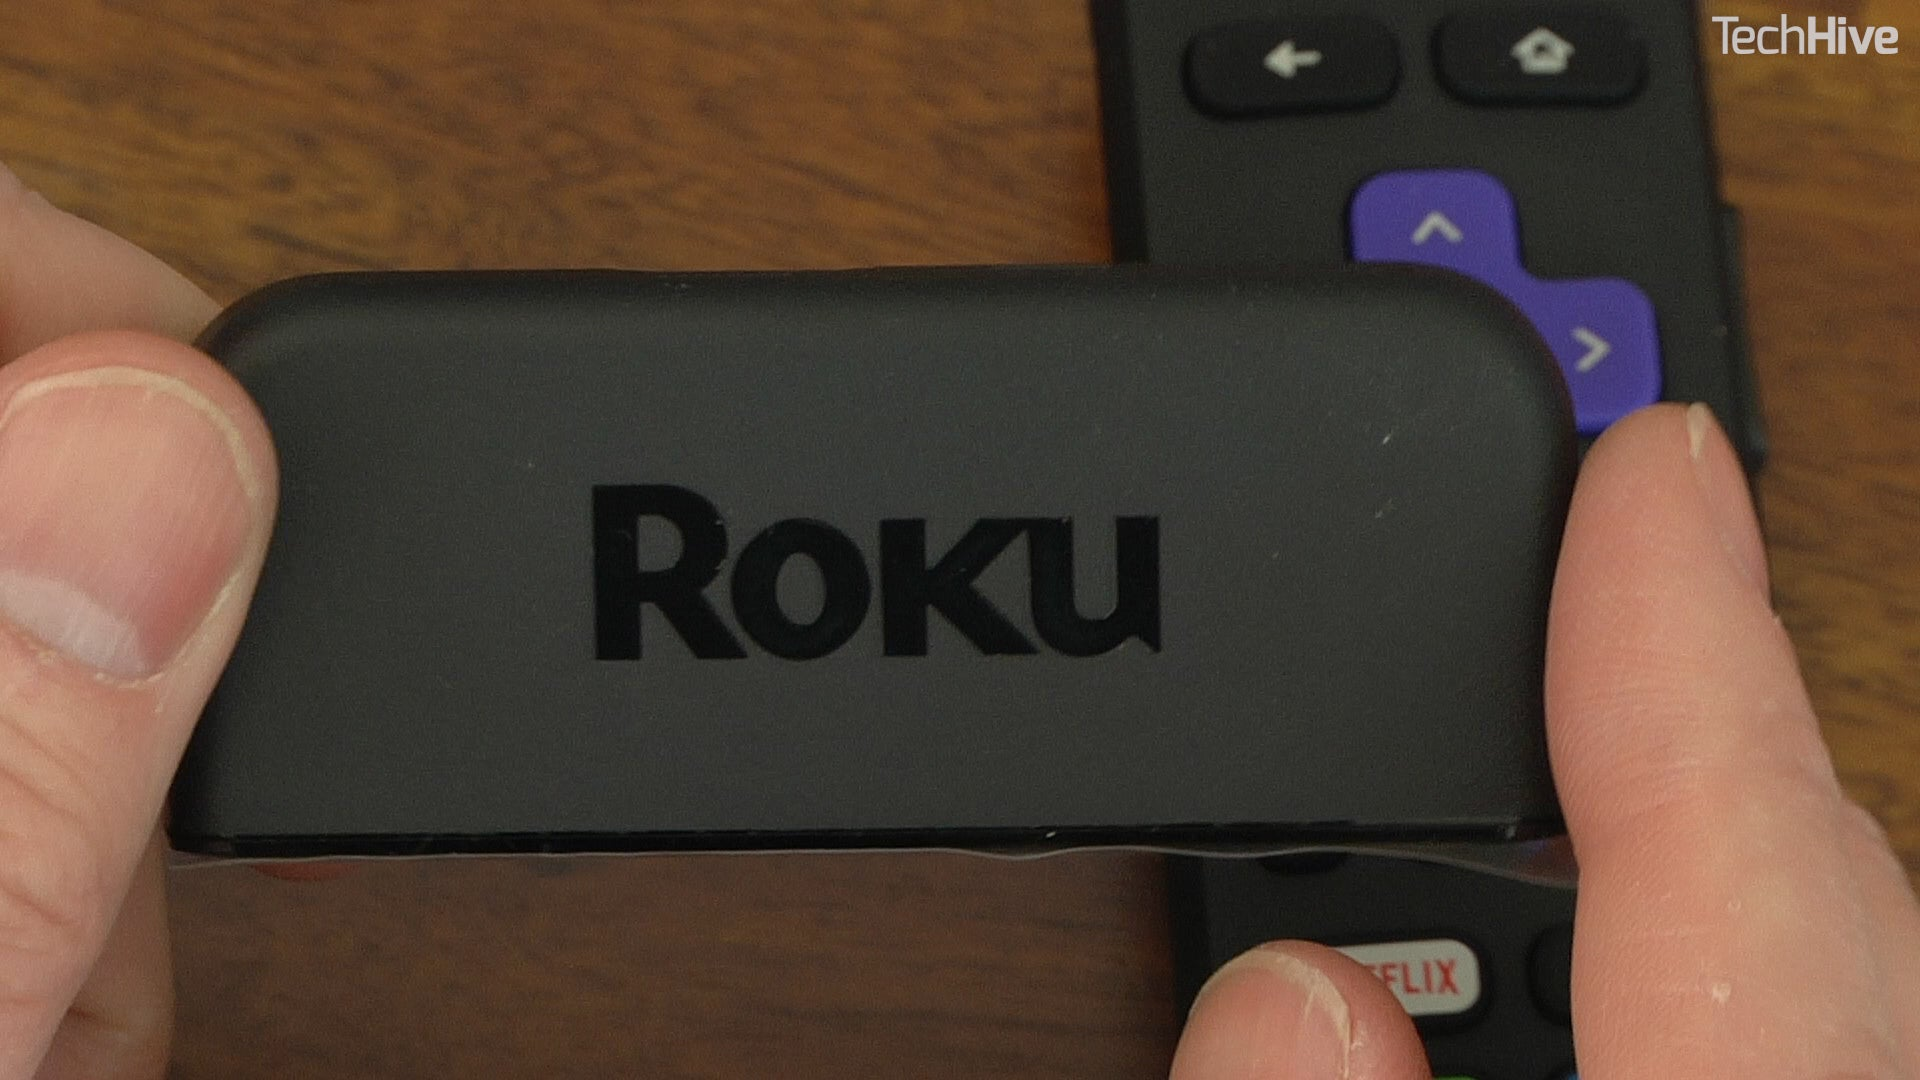 Roku's Premiere Plus impresses with 4K HDR streaming at a